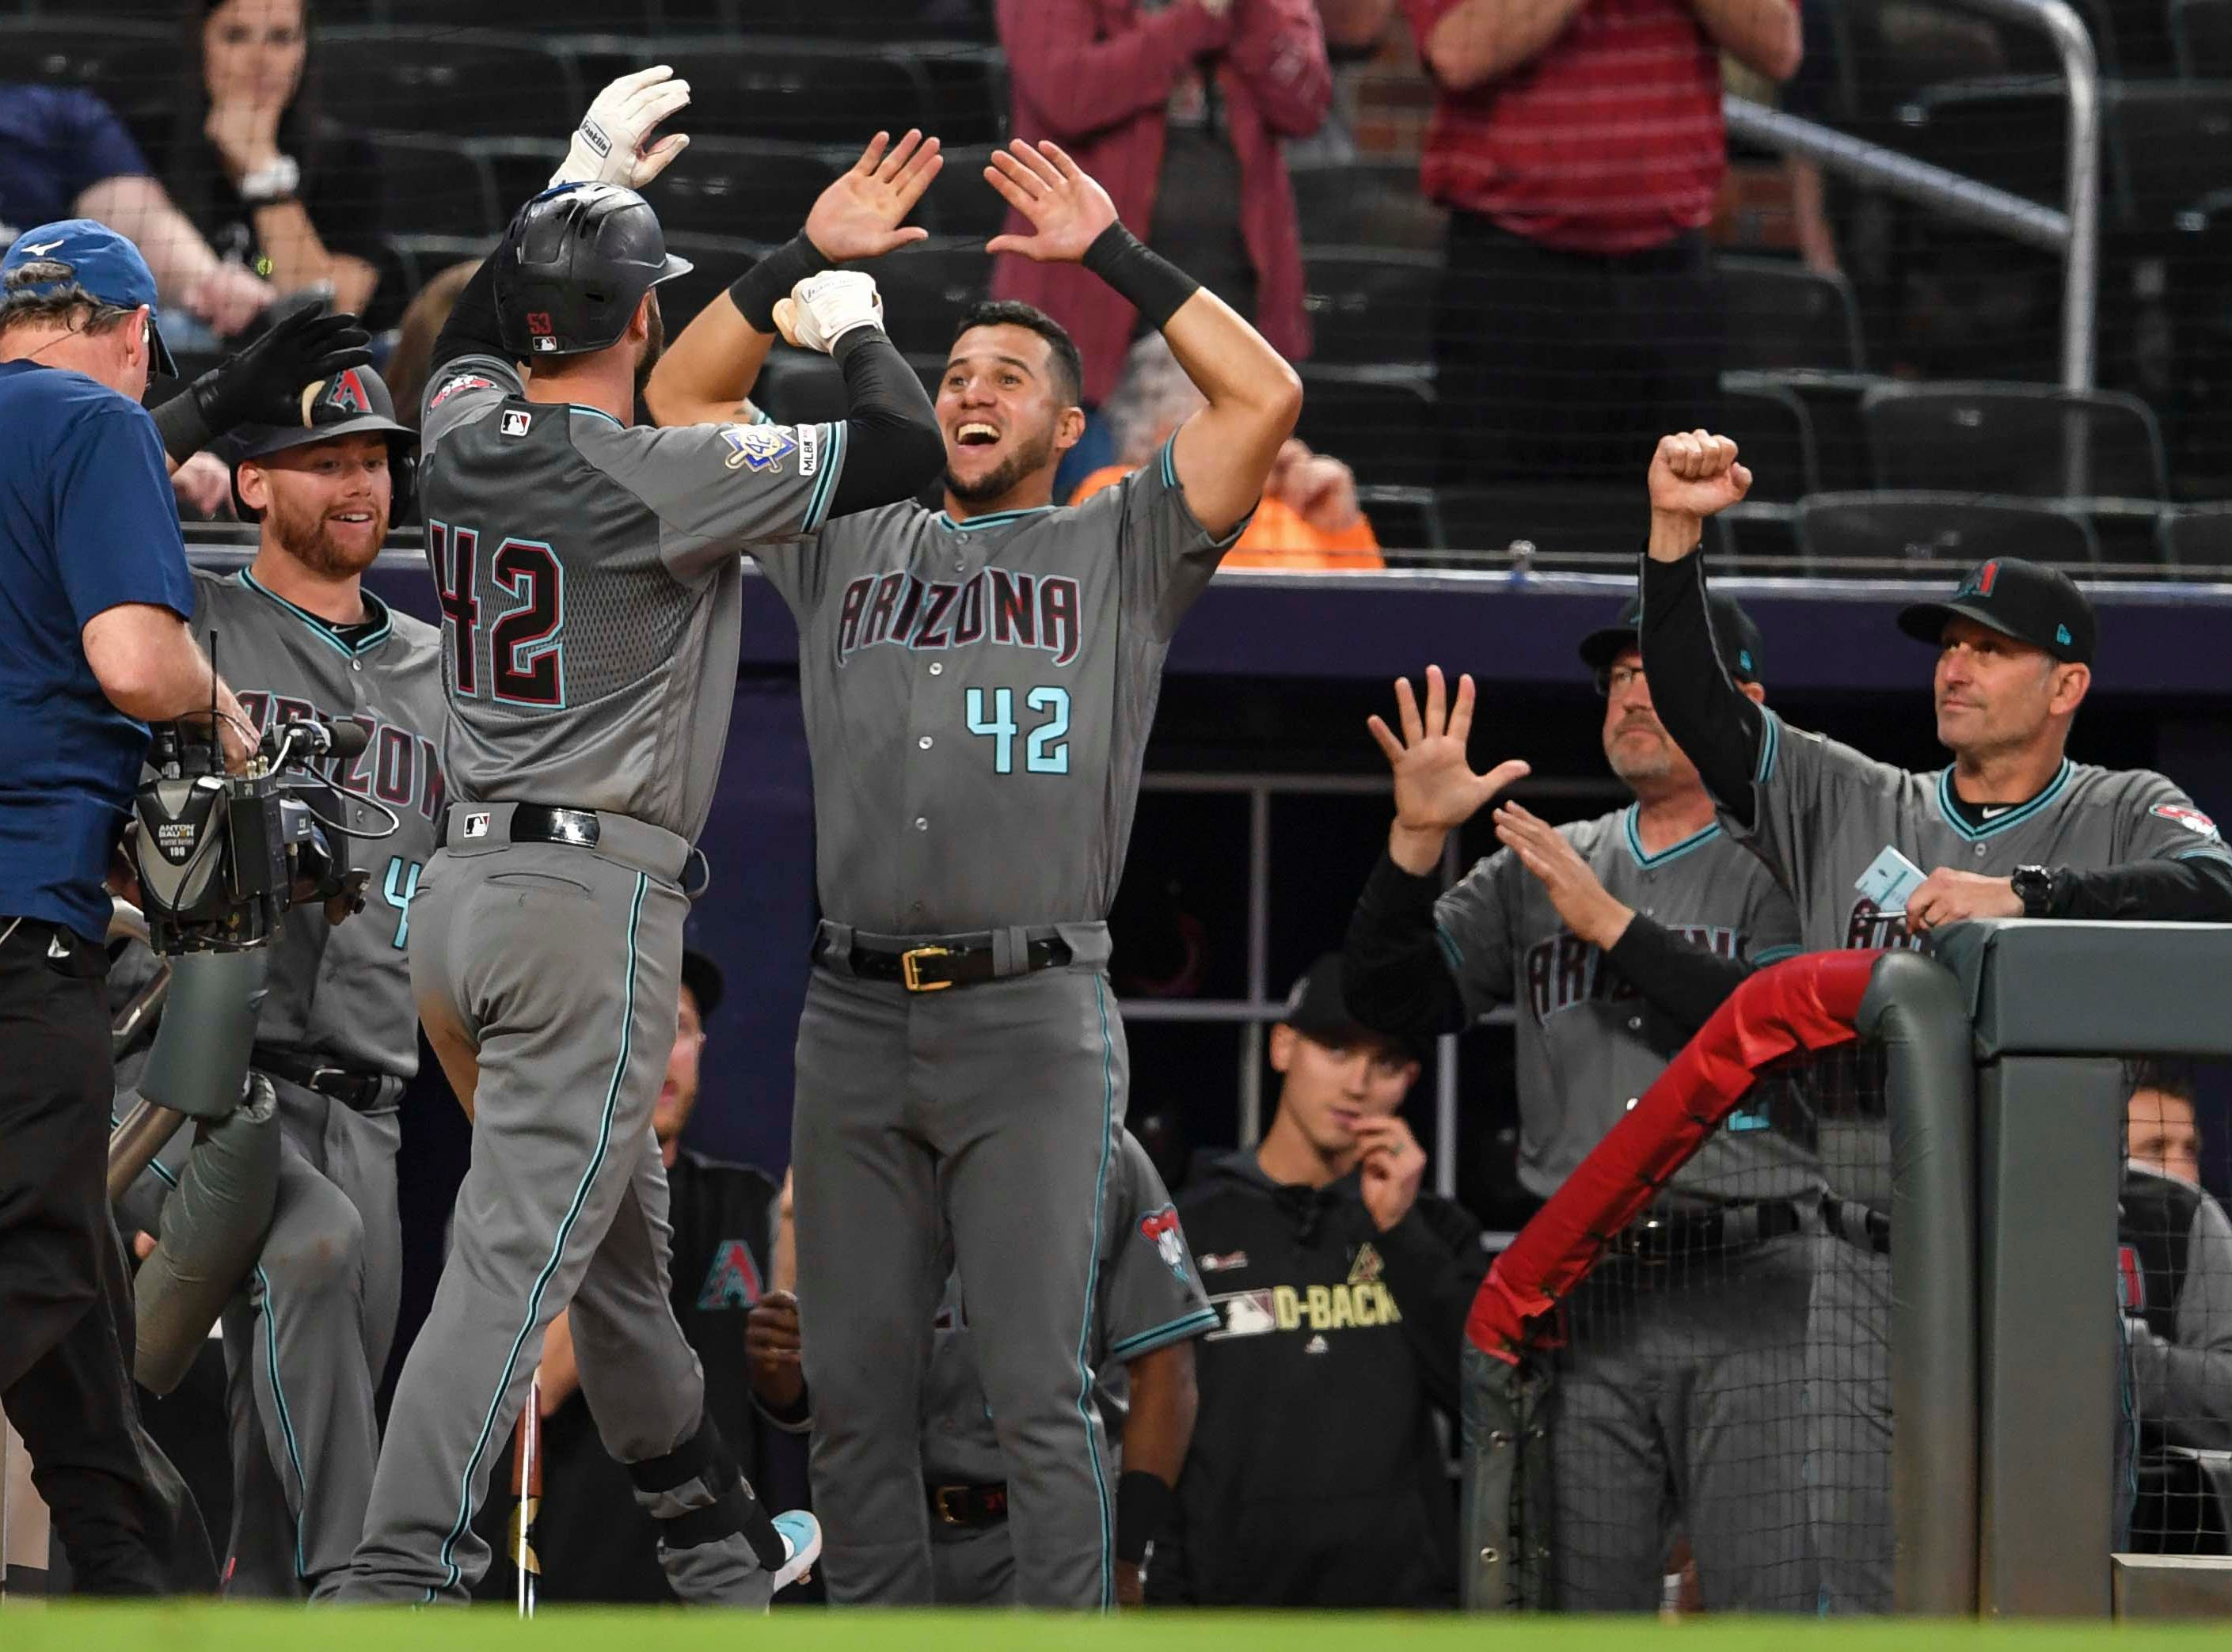 Apr 16, 2019; Atlanta, GA, USA; Arizona Diamondbacks first baseman Christian Walker (53) (white gloves) reacts with teammates in the dugout after hitting a home run against the Atlanta Braves during the ninth inning at SunTrust Park. Mandatory Credit: Dale Zanine-USA TODAY Sports